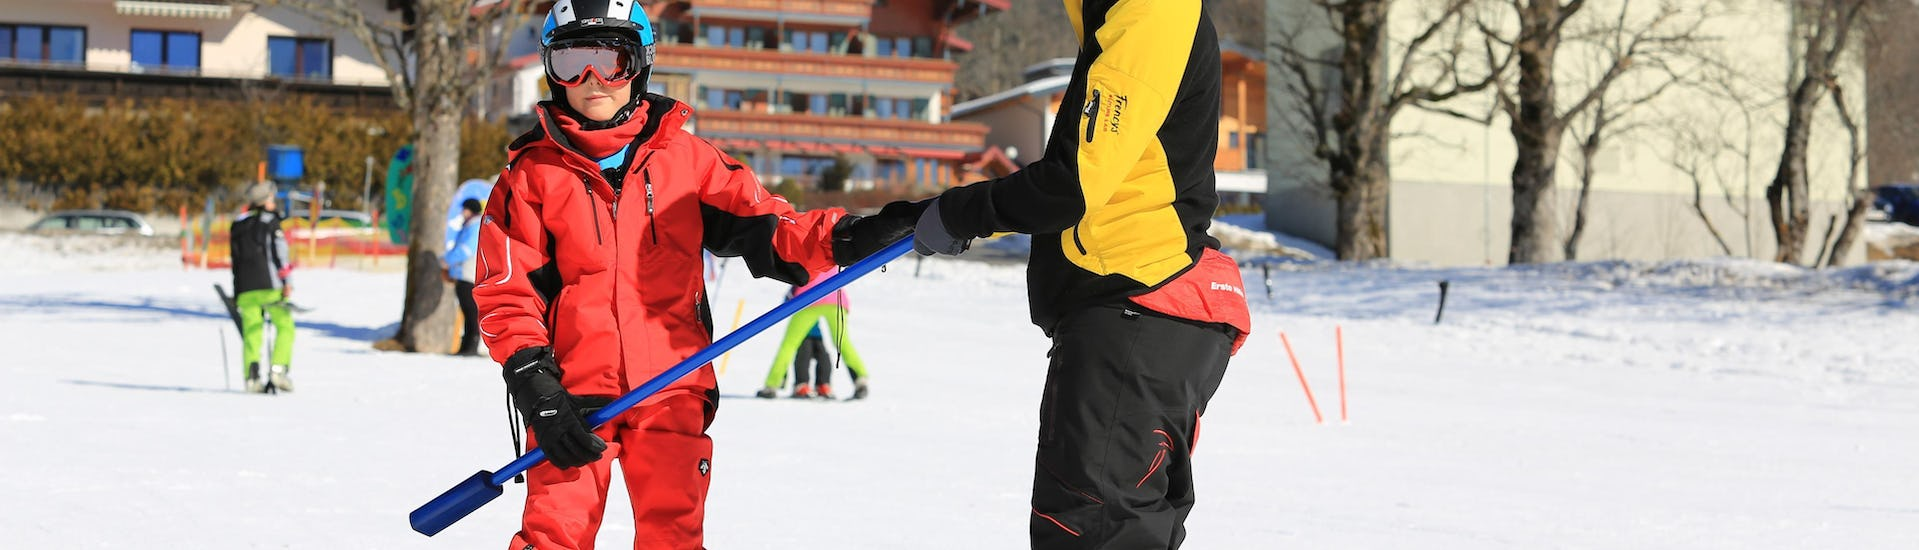 """Snowboard Lessons """"Half Day"""" for Kids & Adults - Advanced"""